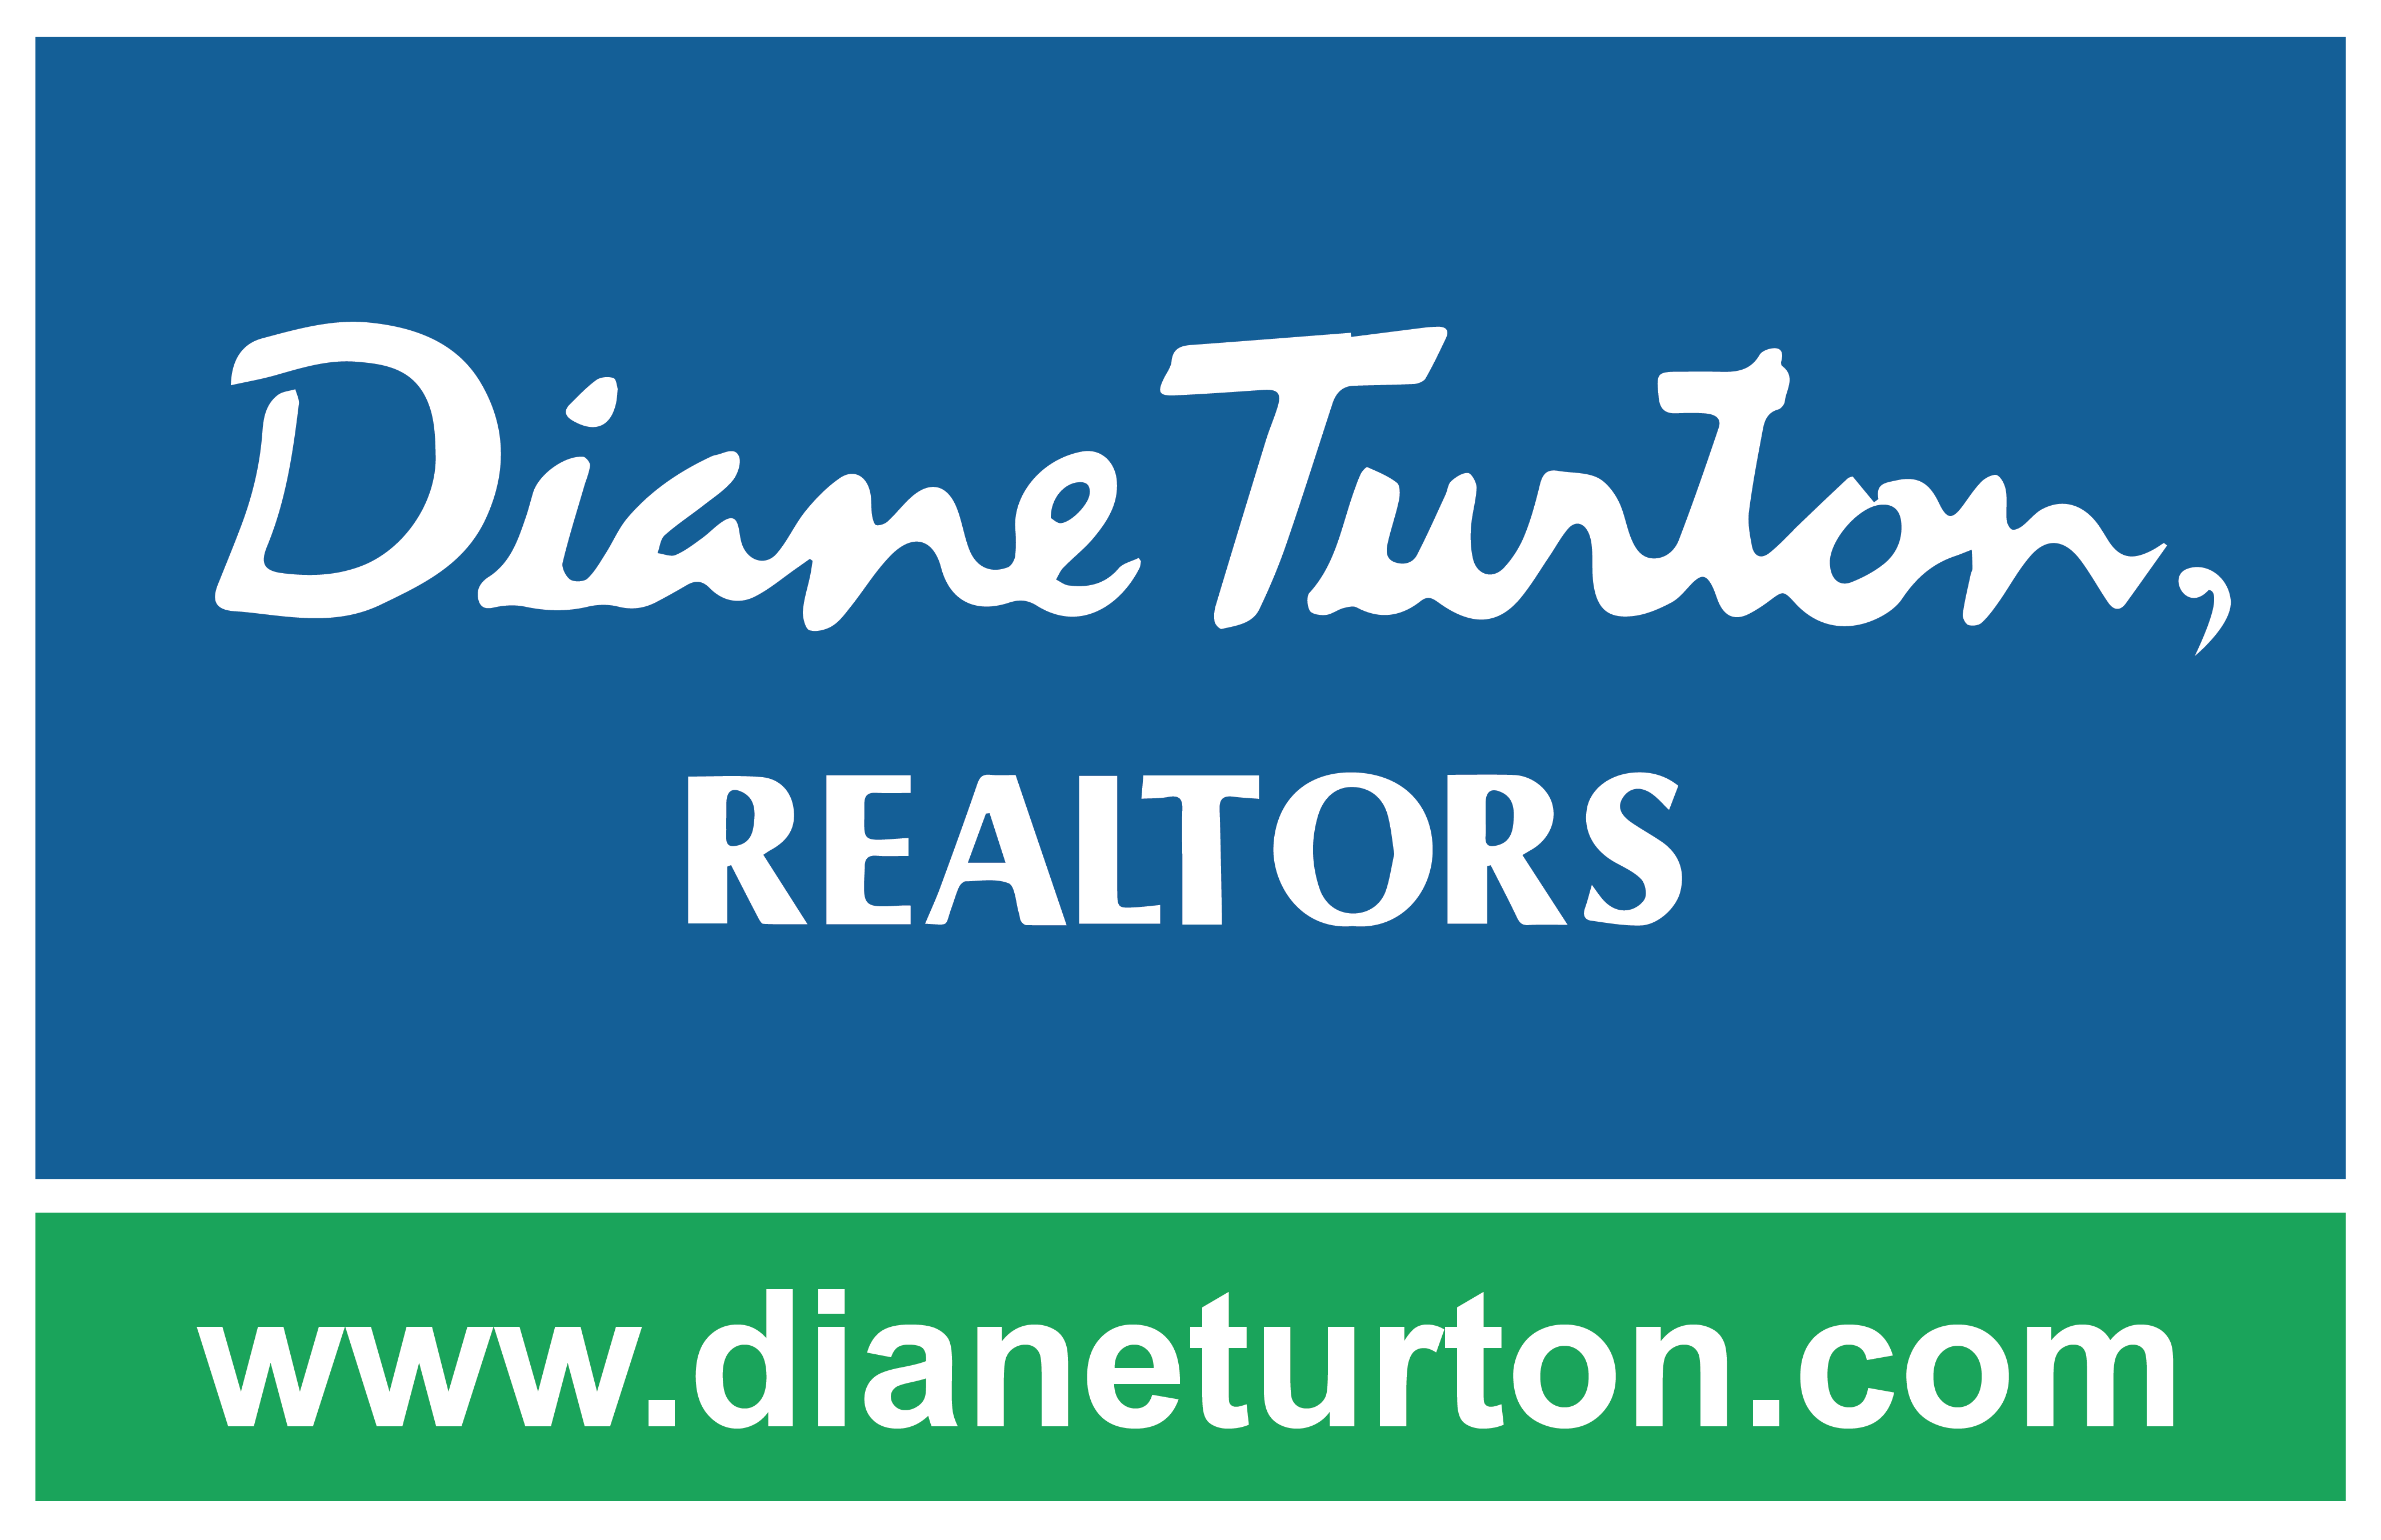 Diane Turton, Realtors Announces December, 2019 Salesperson of the Month Award Winners